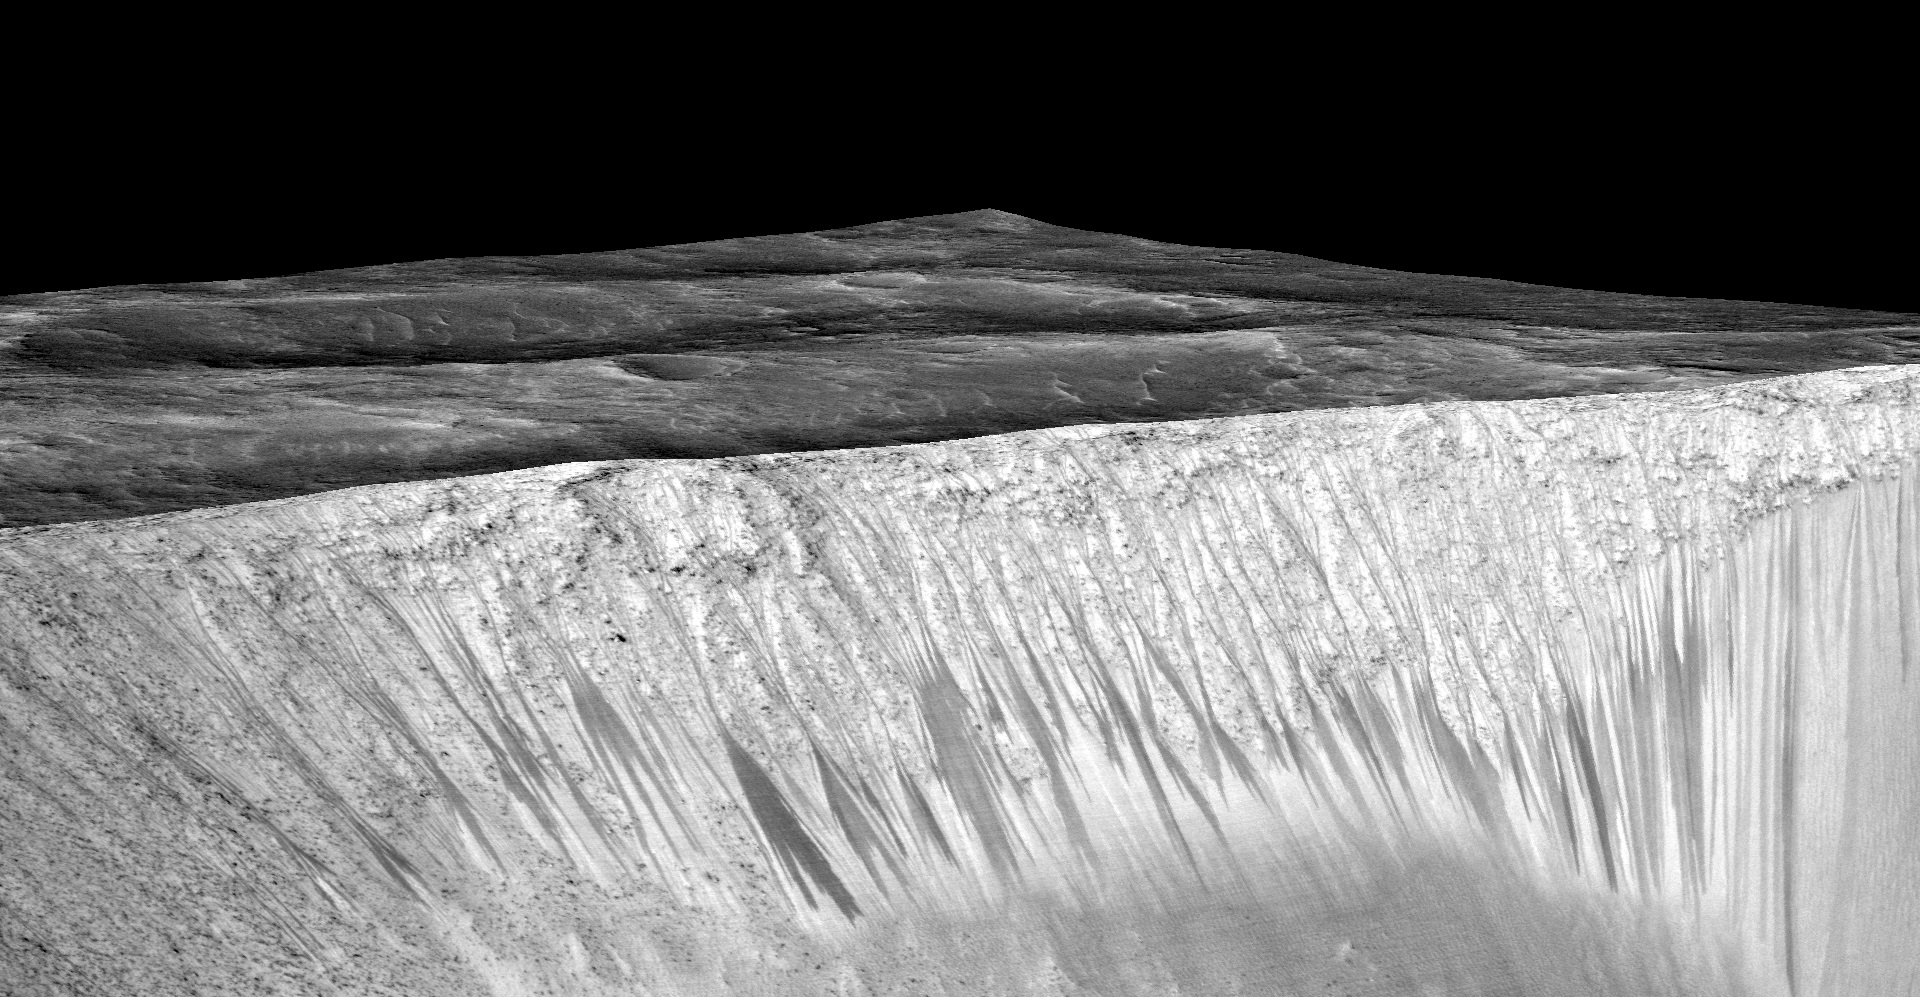 Slope Lineae at Garni Crater on Mars